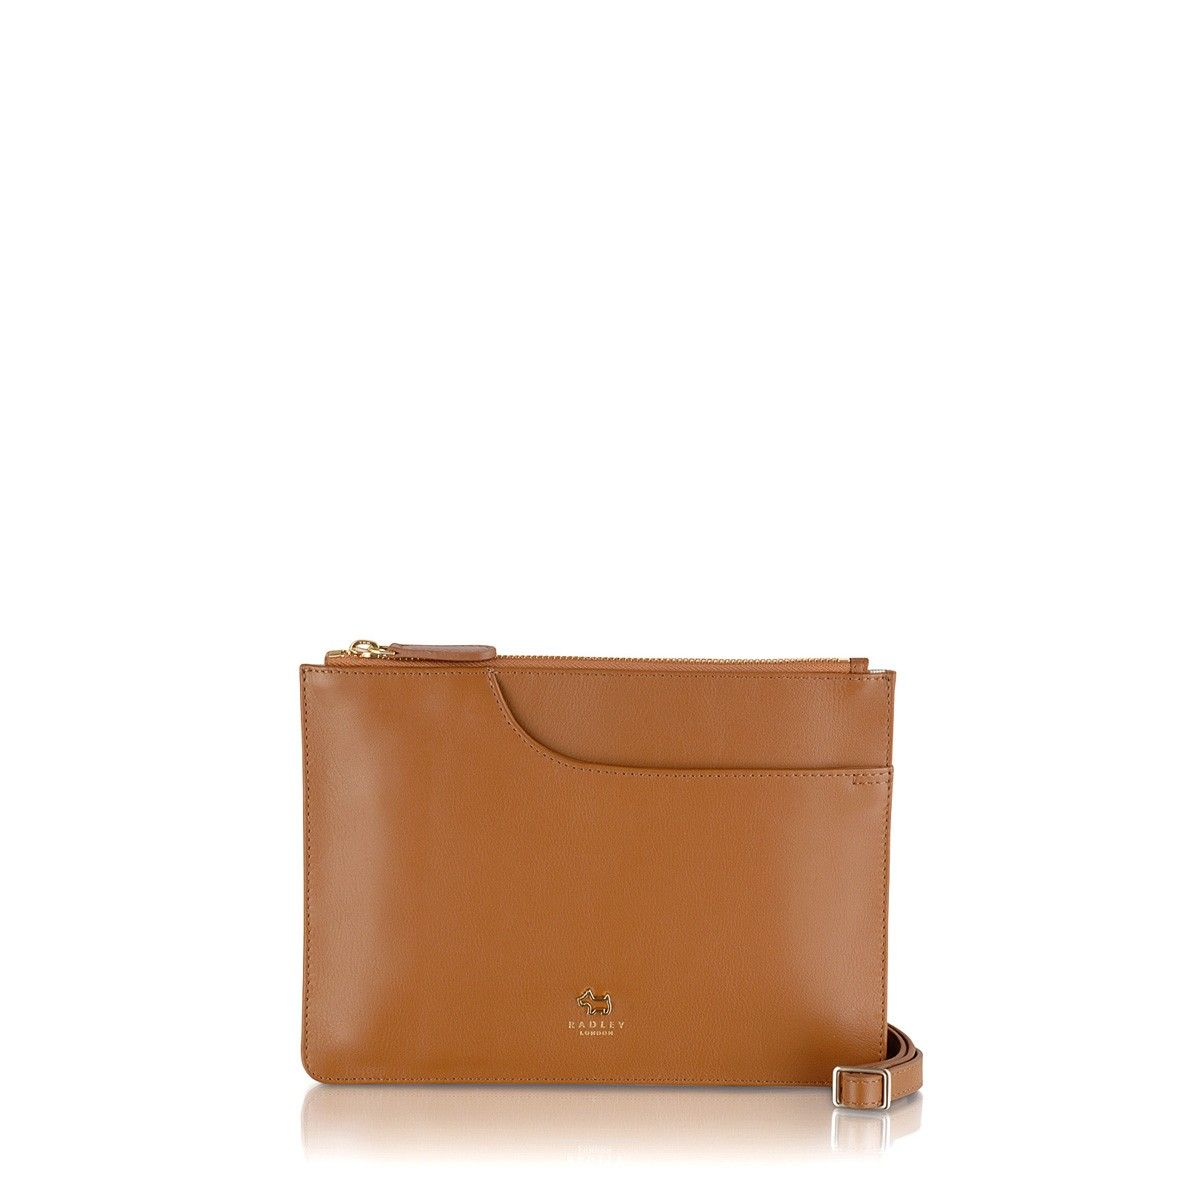 The Pockets medium leather cross body bag is sleek, chic and wonderfully compact. Great for both day and night styles.